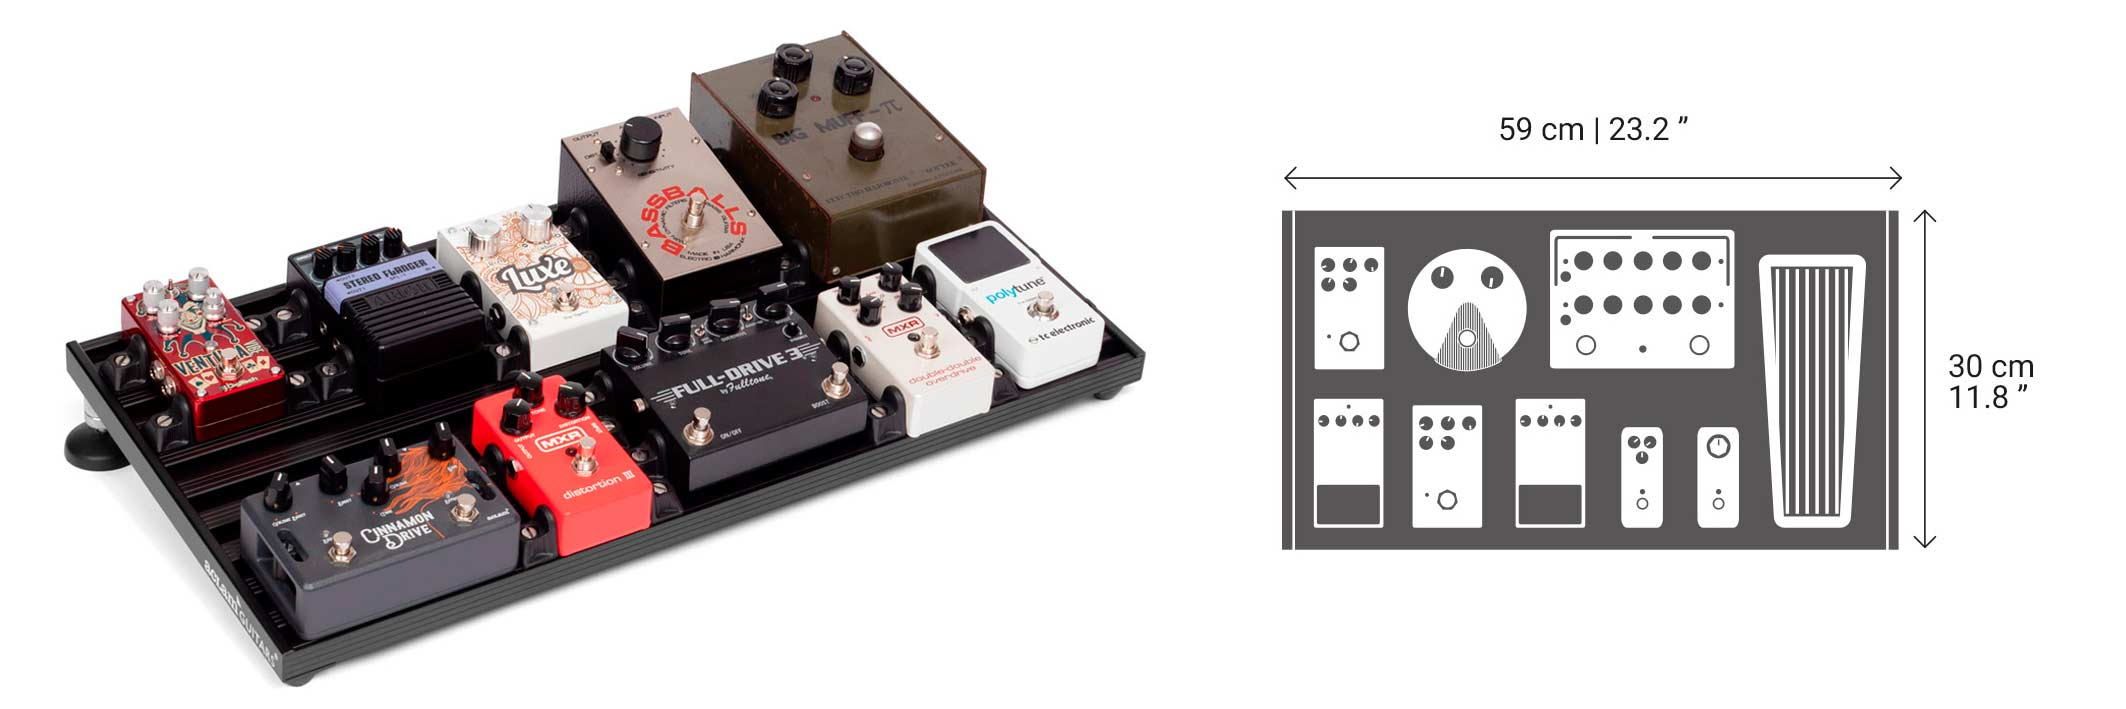 Aclam pedalboard size S2